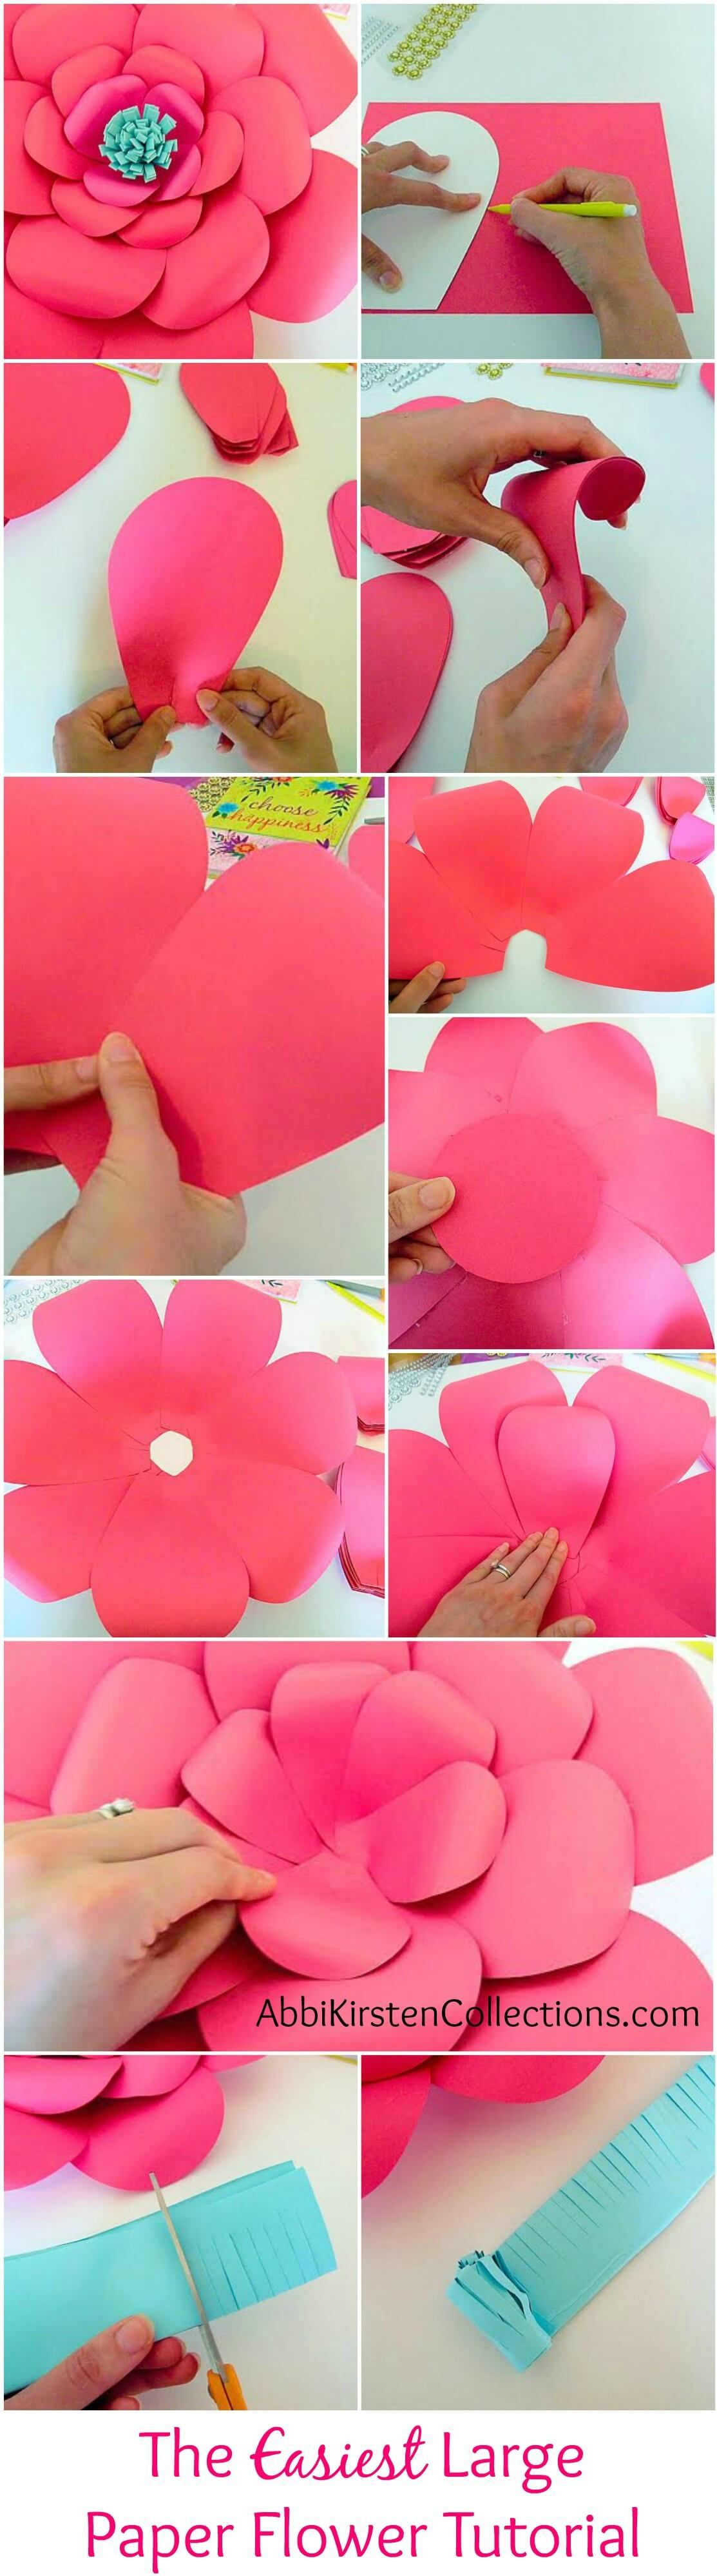 How To Make Large Paper Flowers Easy Diy Giant Paper Flower